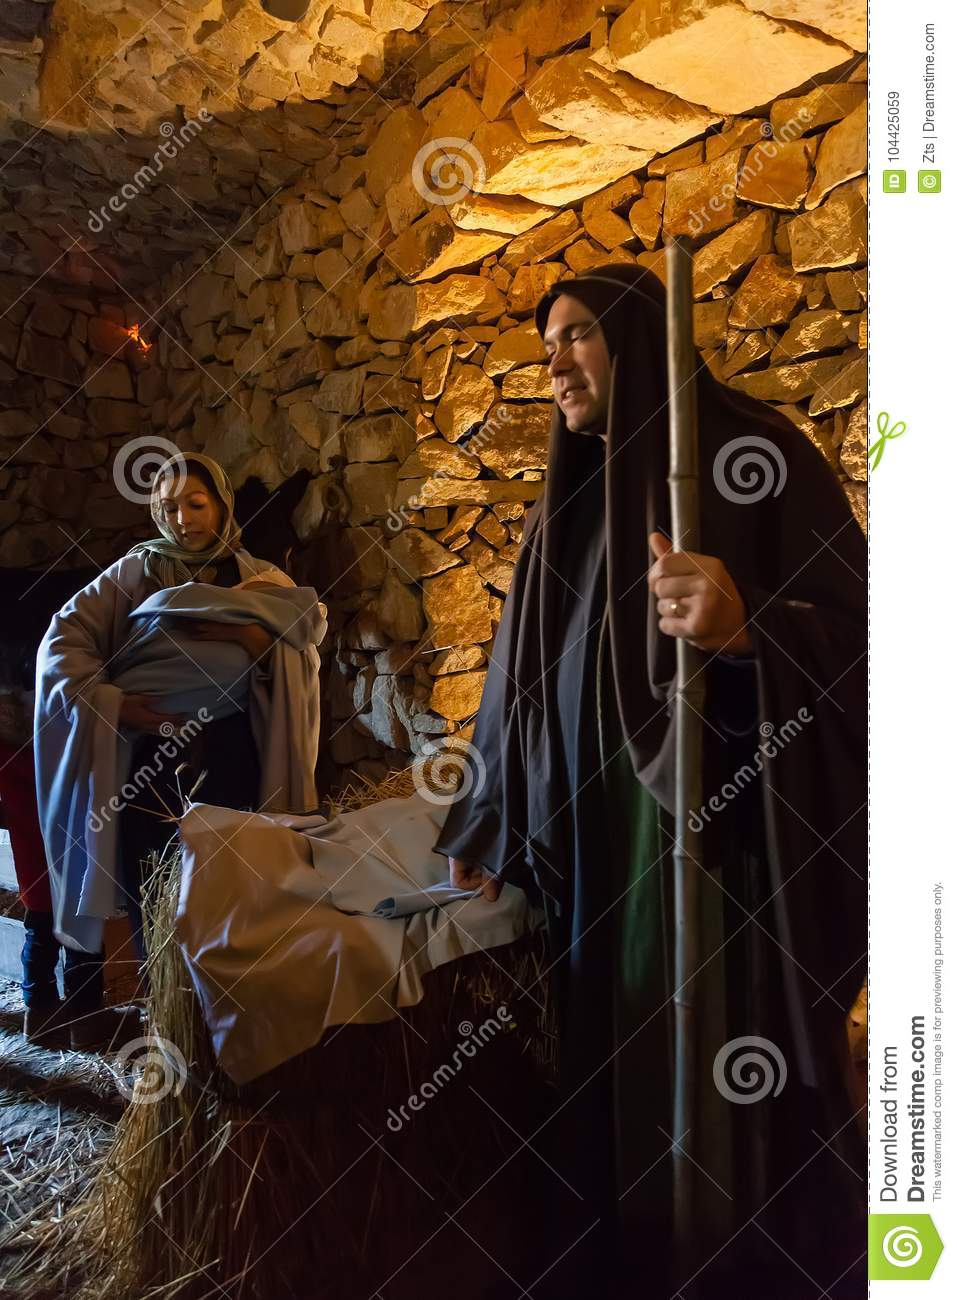 Priscos, Portugal - December 29, 2016: Largest living or live Nativity Scene in Europe. Holy Family, baby Jesus Christ, Mary, Jose